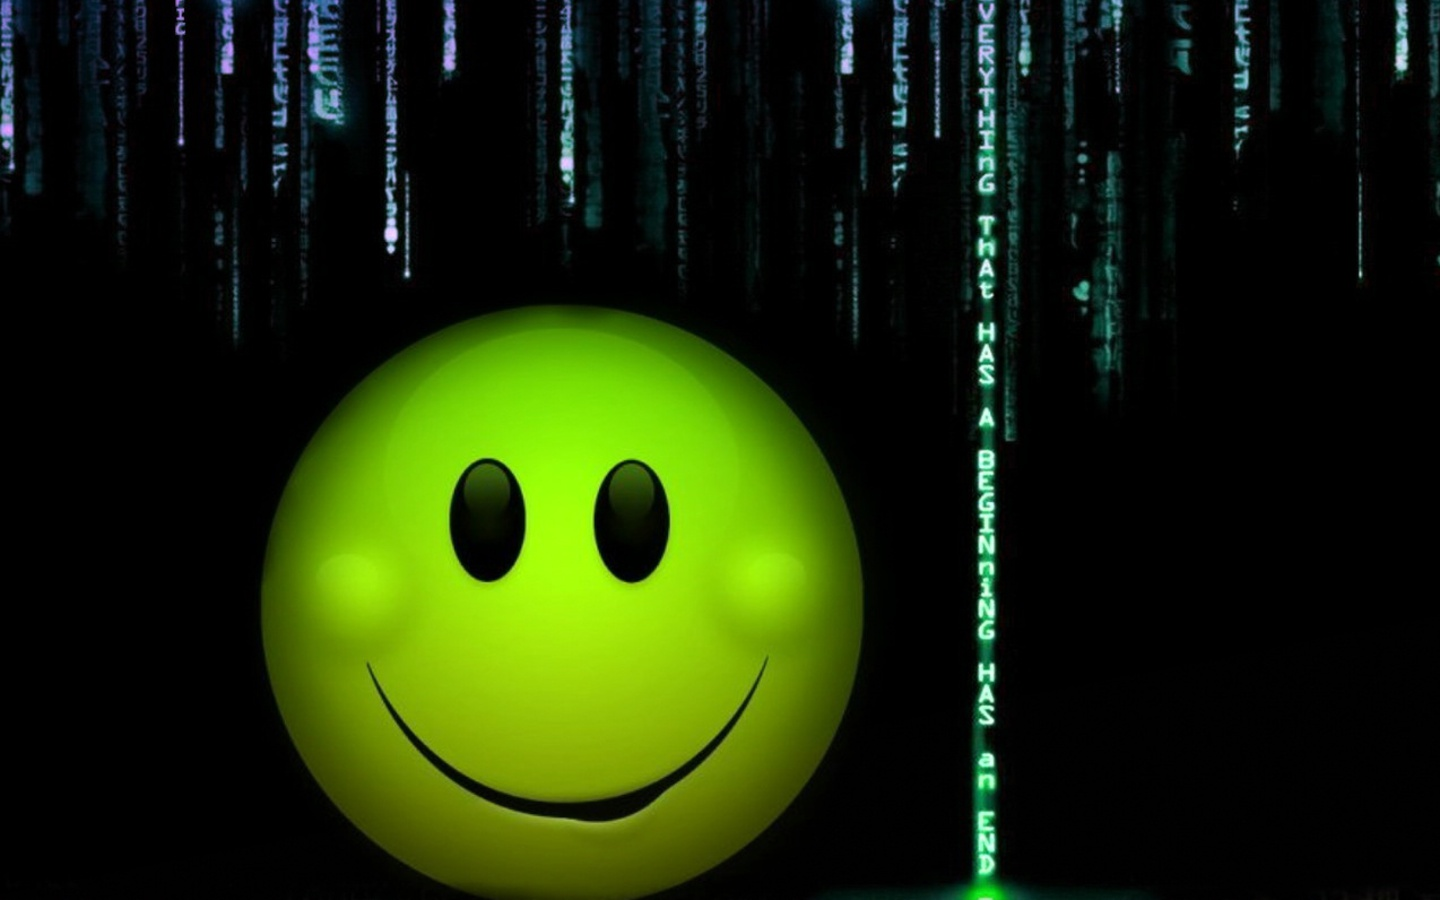 Smileys Faces Hd Pictures Image Size 1440x900 Free Download